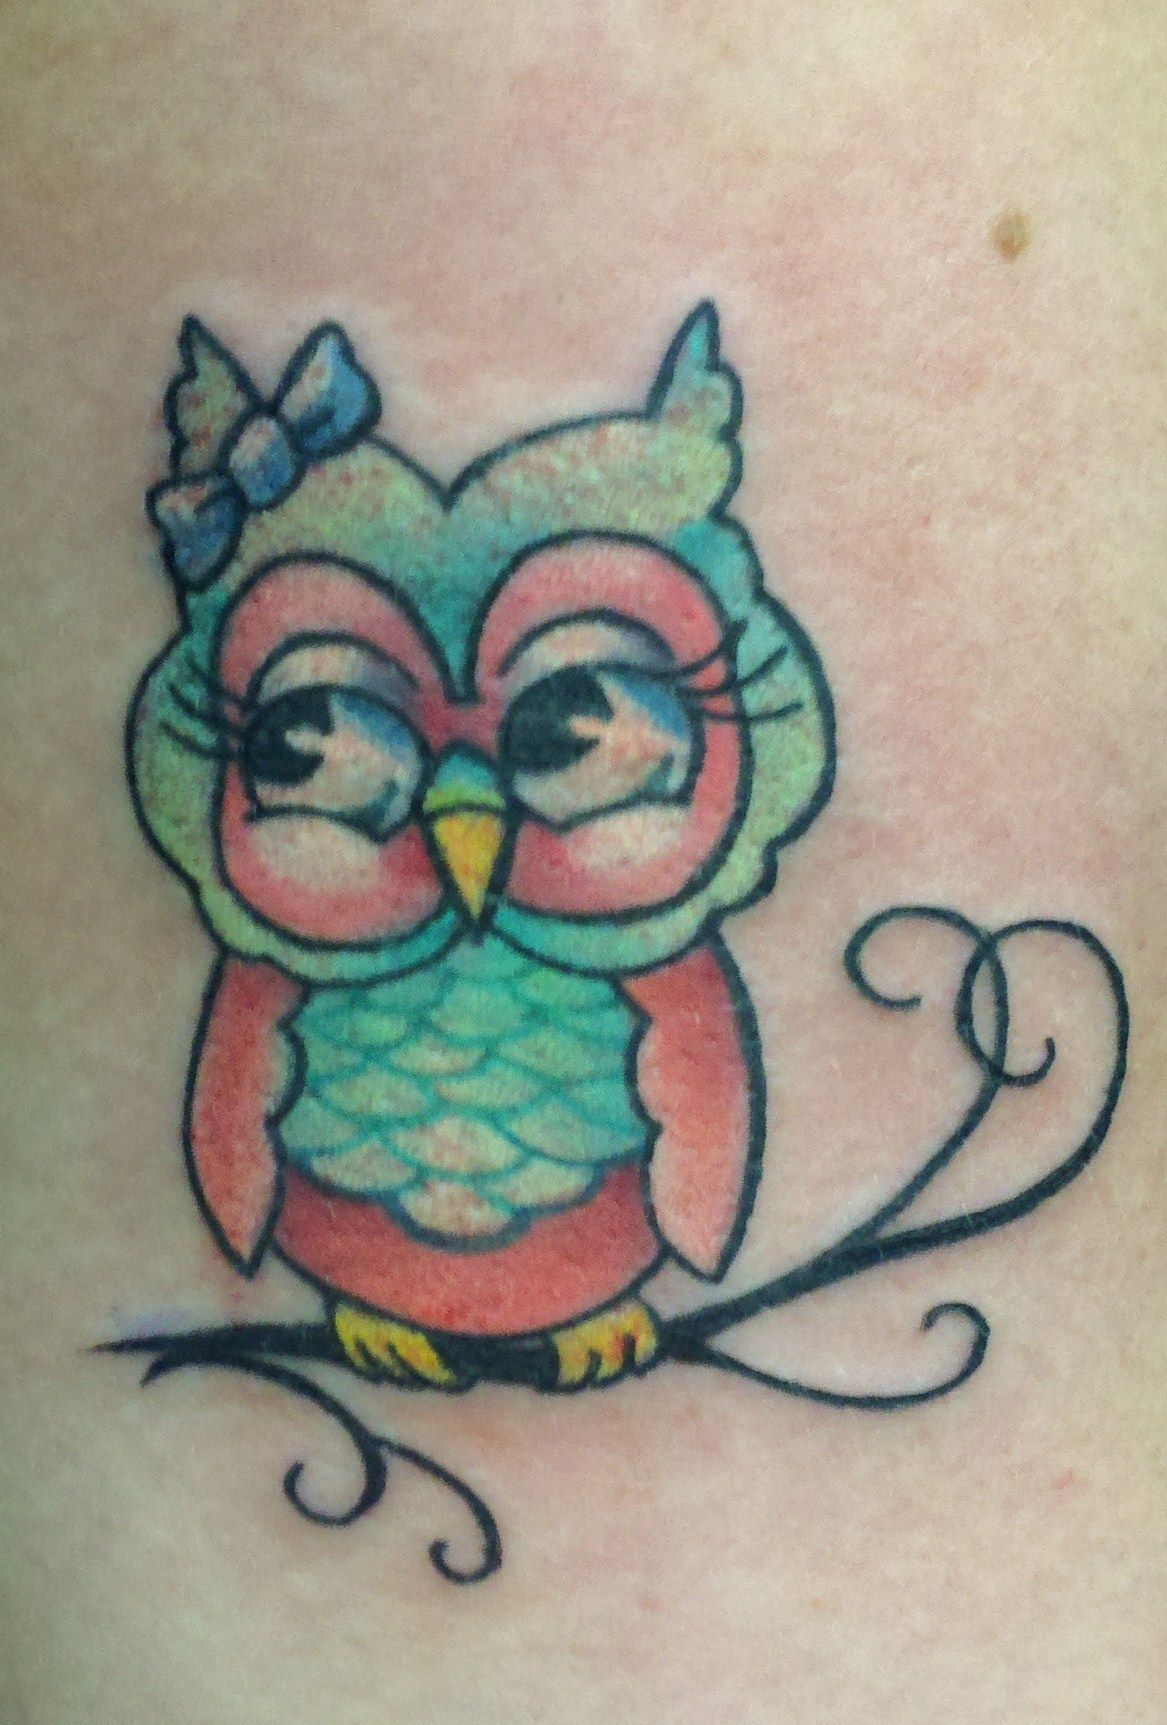 Little owl tattoo owls hoot pinterest tattoo owl tattoo cute girly owl tattoo that id like to get but with bright pinks and blues instead of the other colors it has voltagebd Image collections